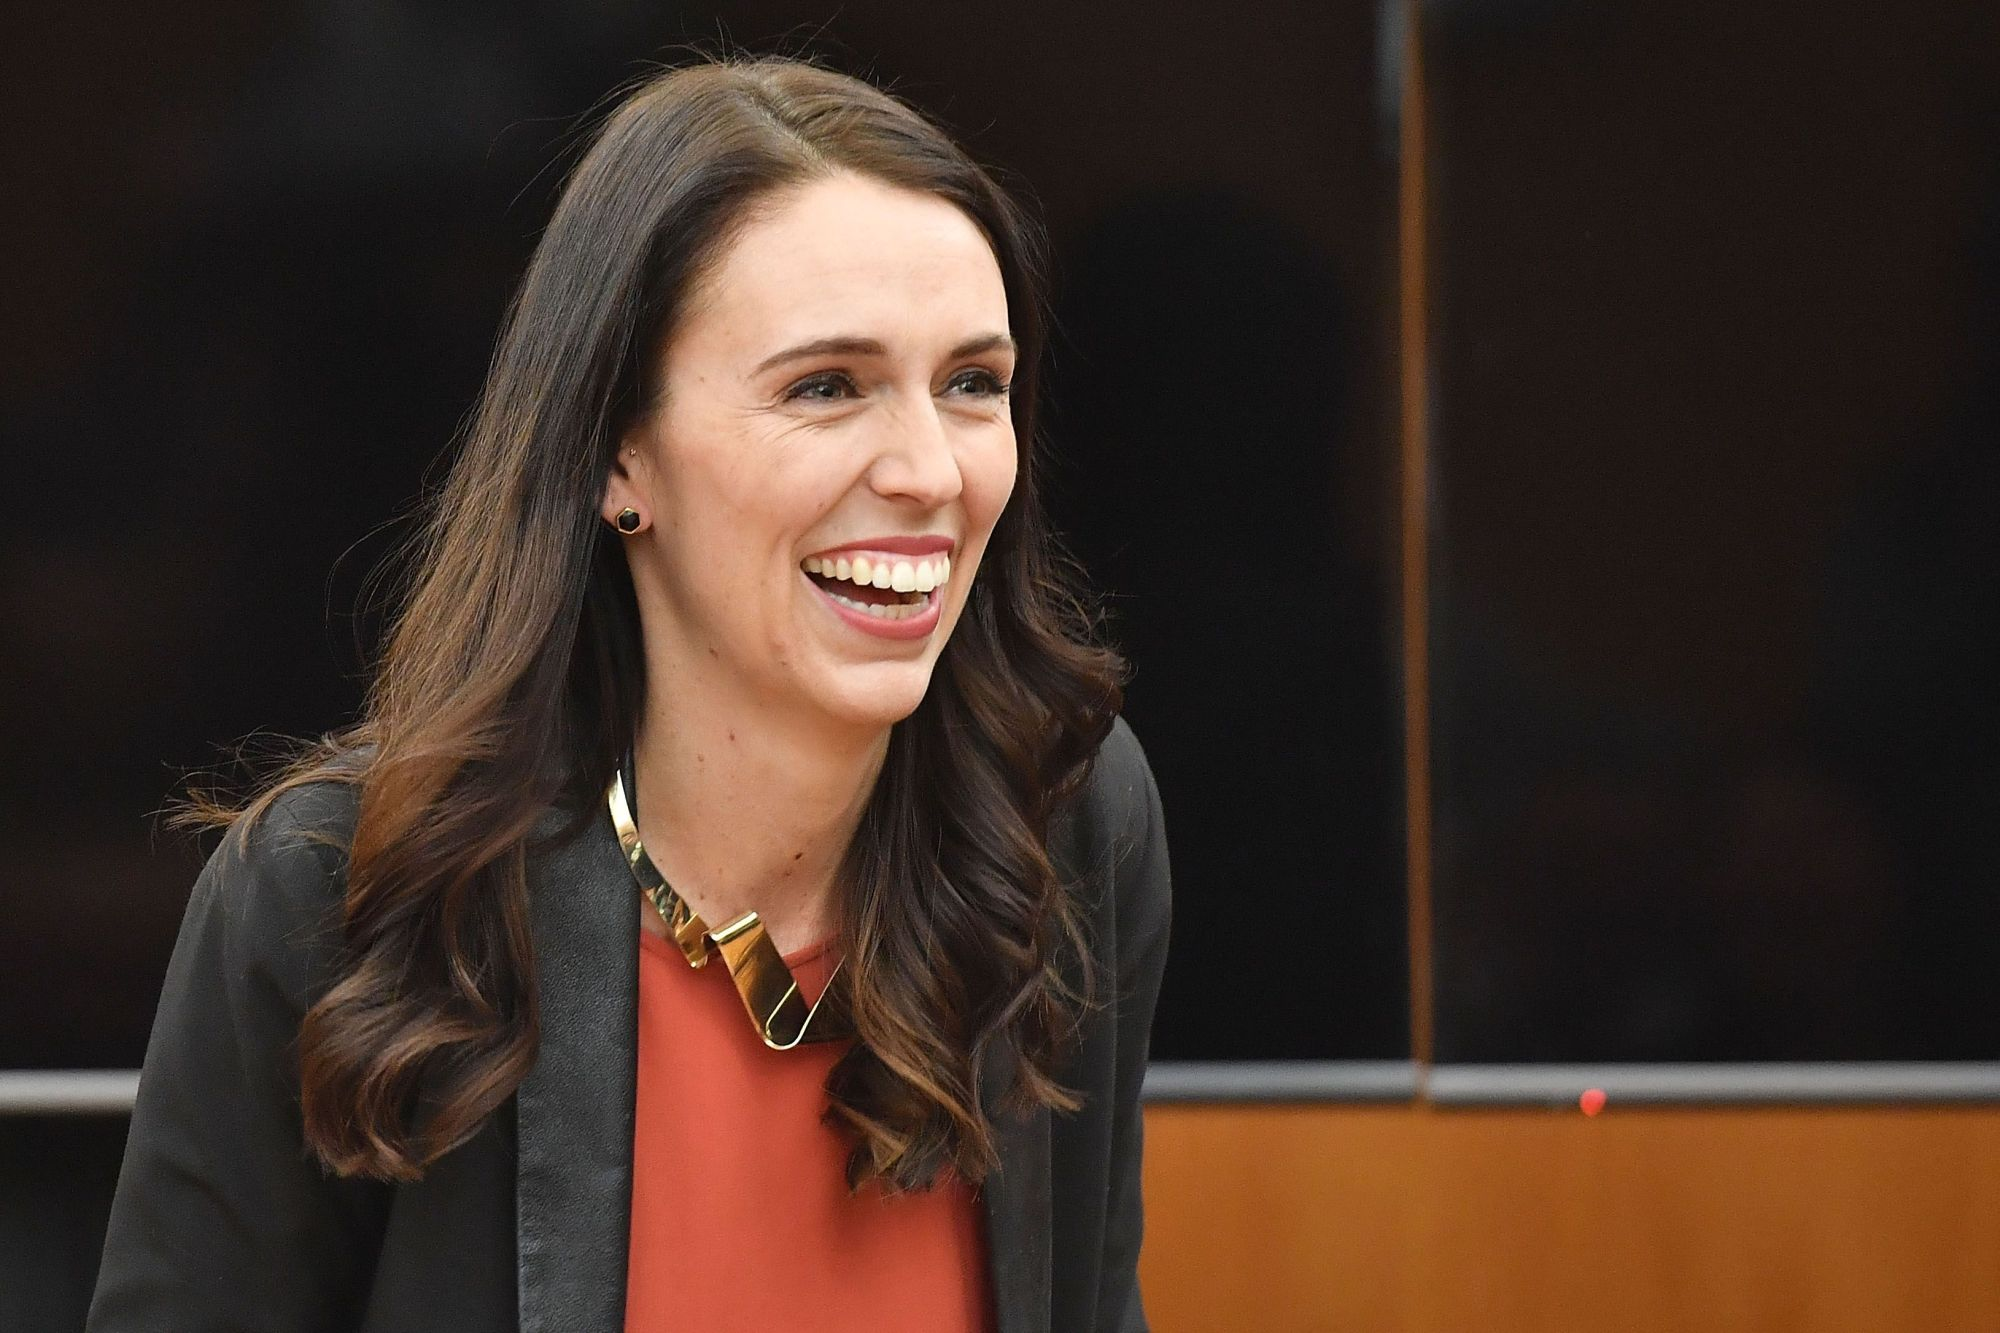 NEW ZEALAND PRIME MINISTER SETS TO BECOME THE COUNTRY'S FIRST LEADER TO GIVE BIRTH WHILE IN OFFICE